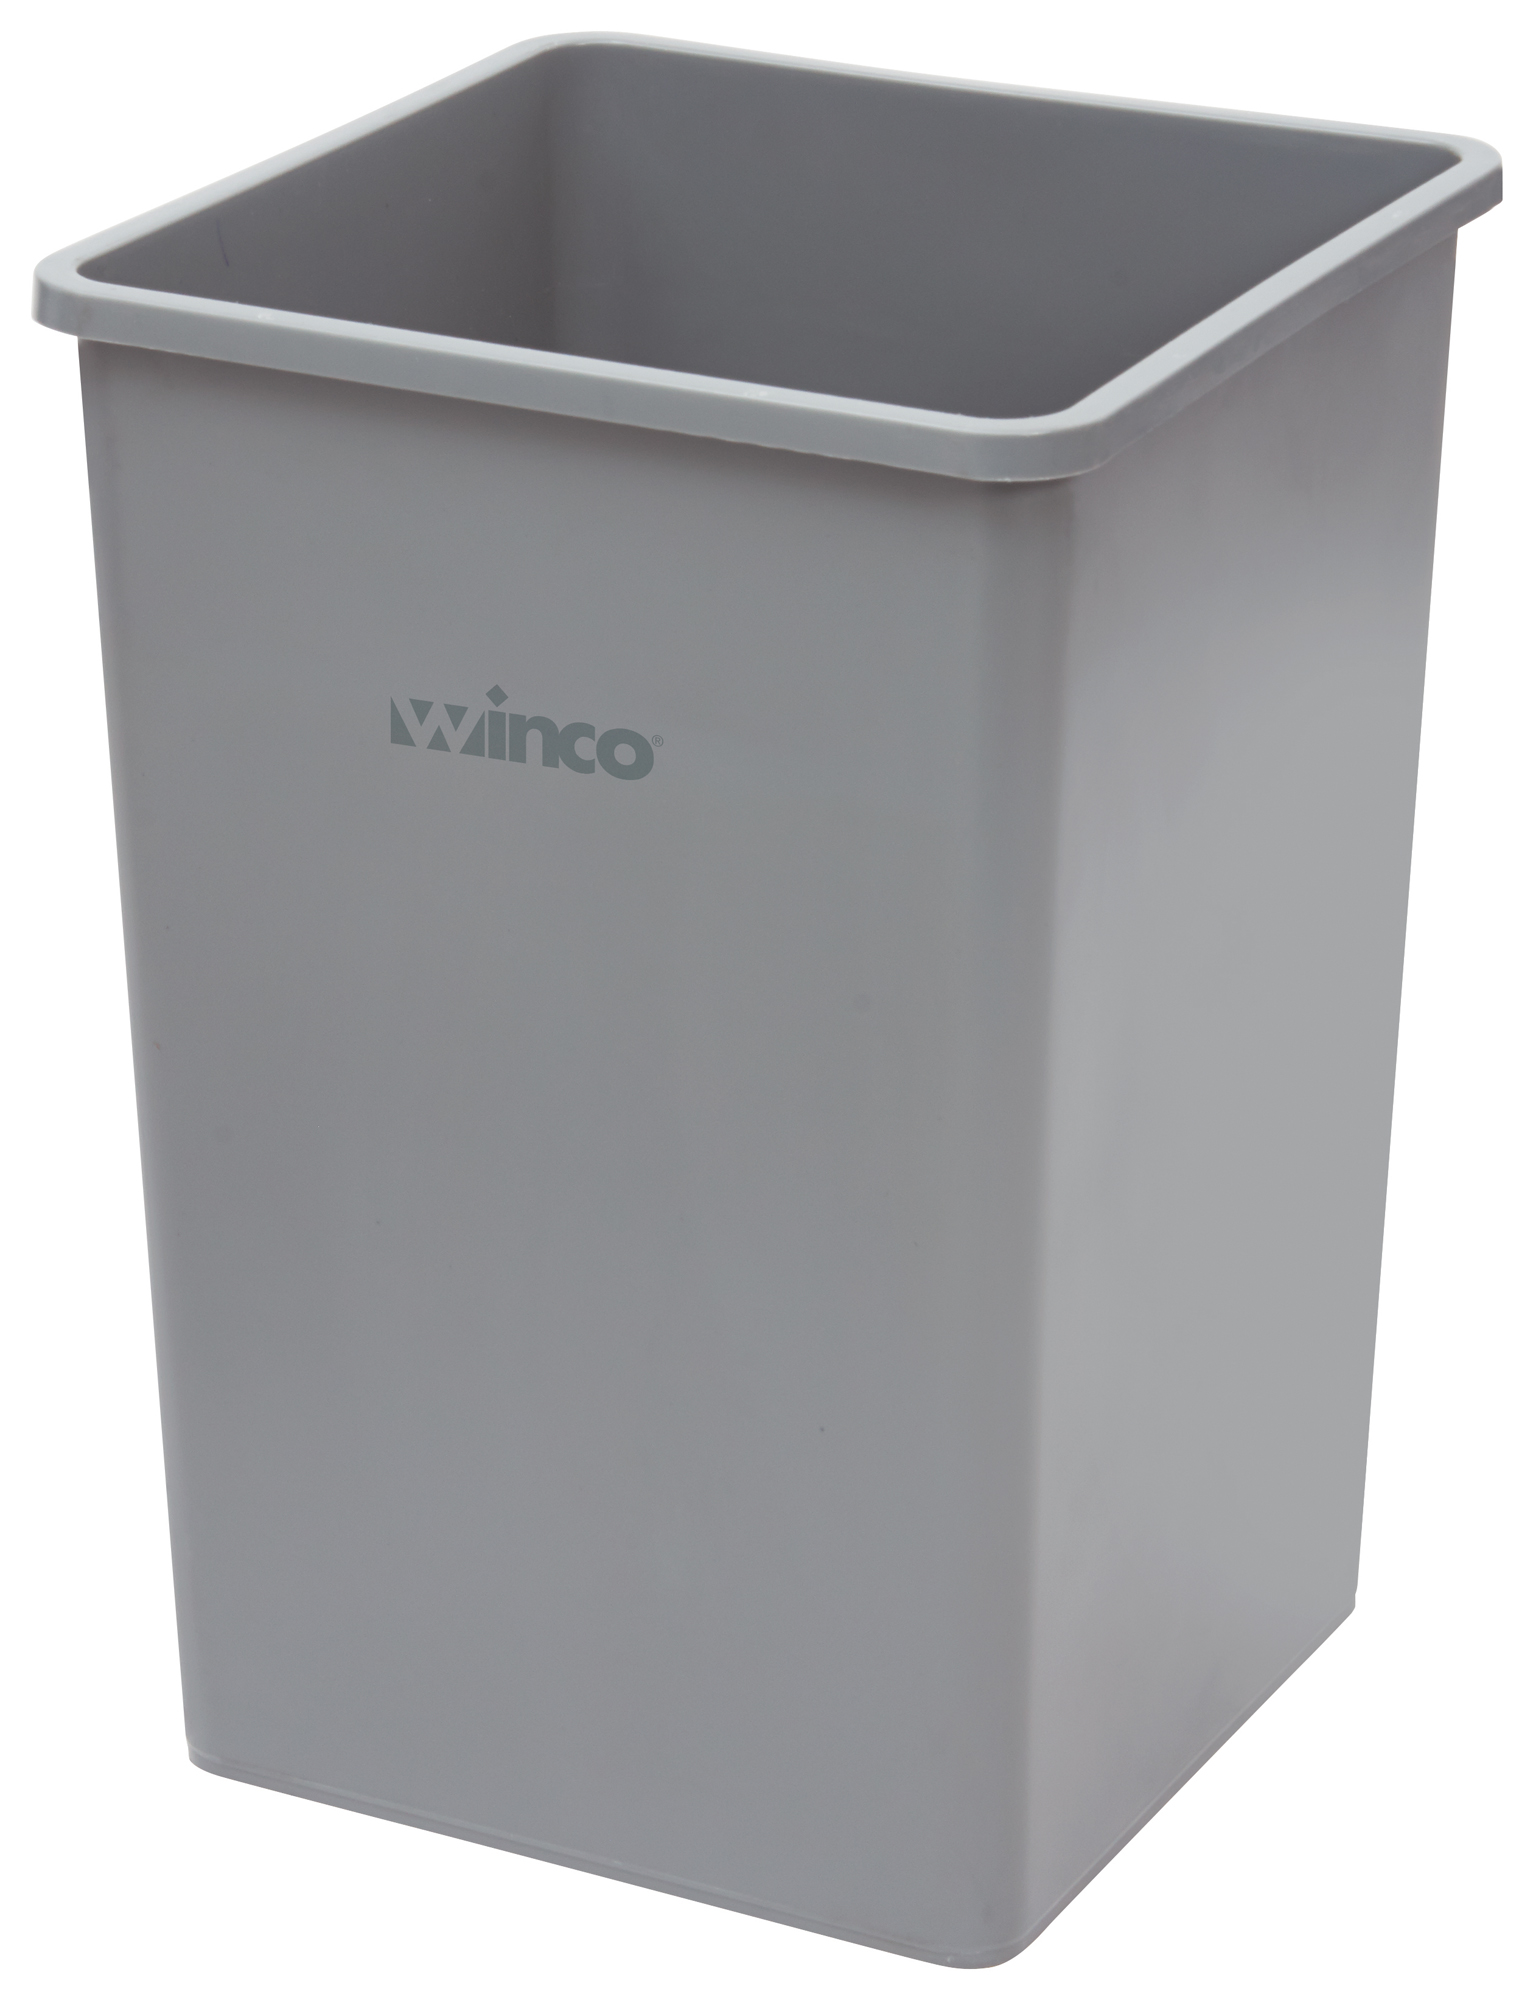 Winco PTCS-35G trash cans & accessories